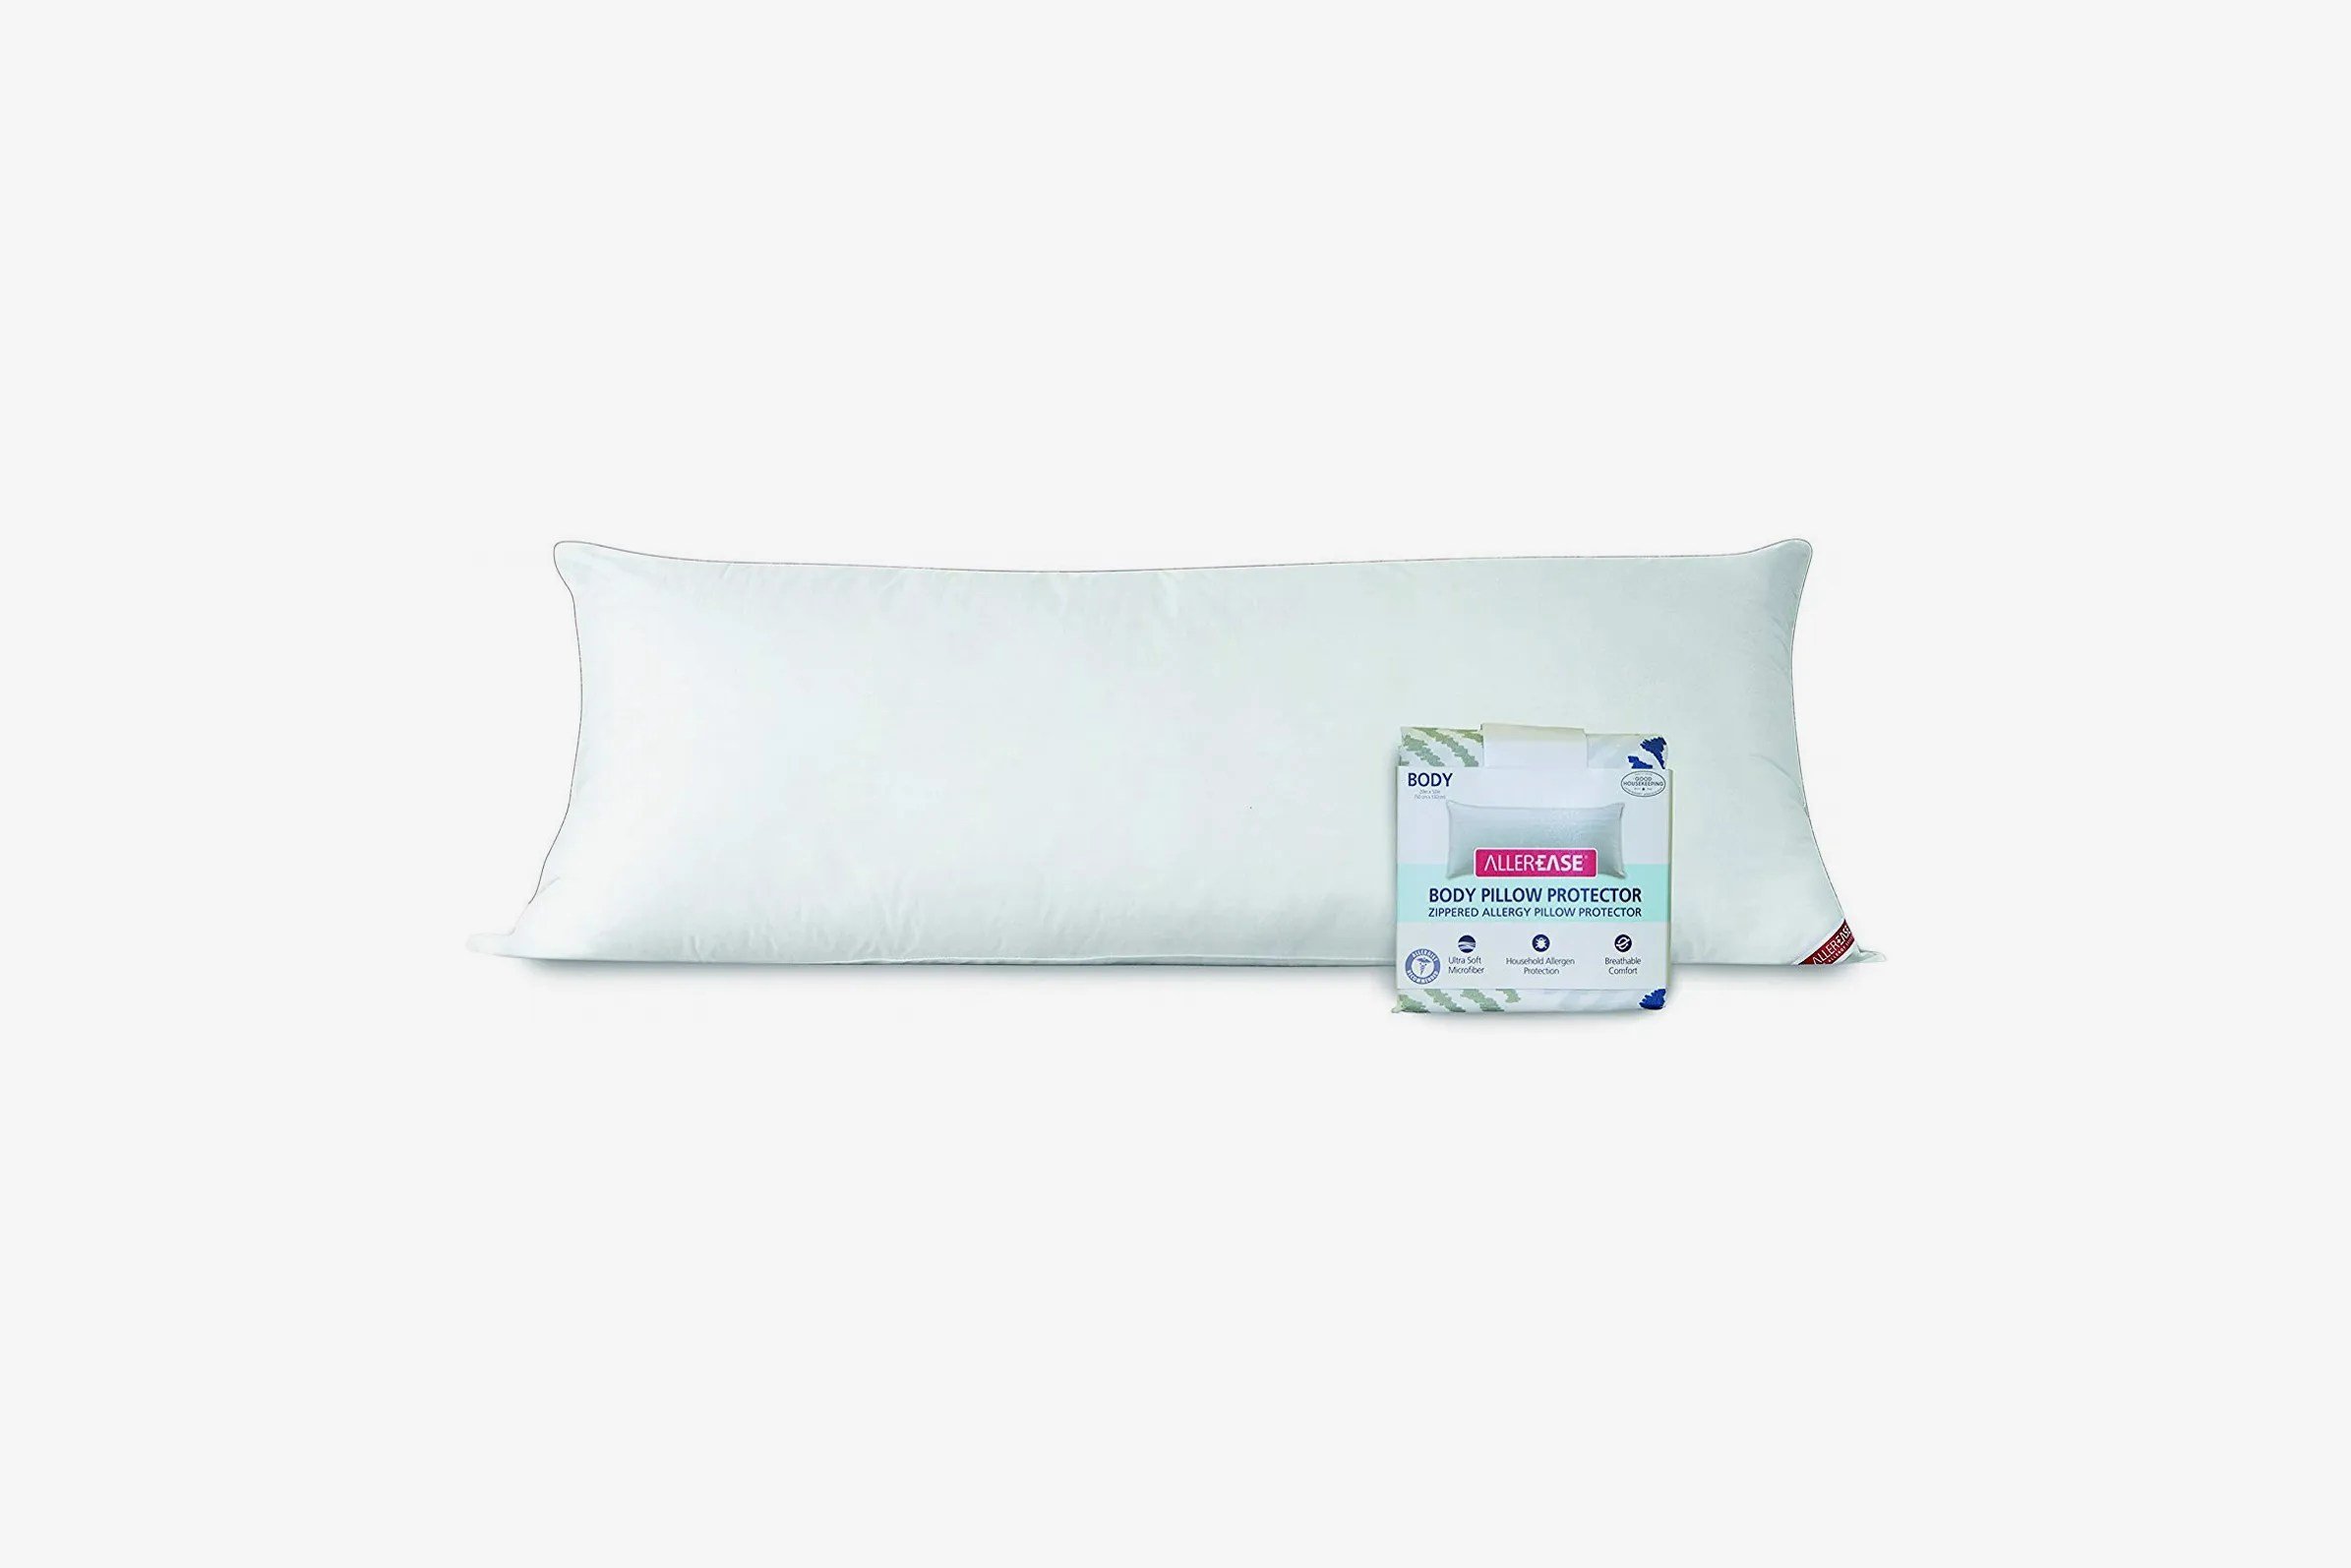 https nymag com strategist article best body pillows html